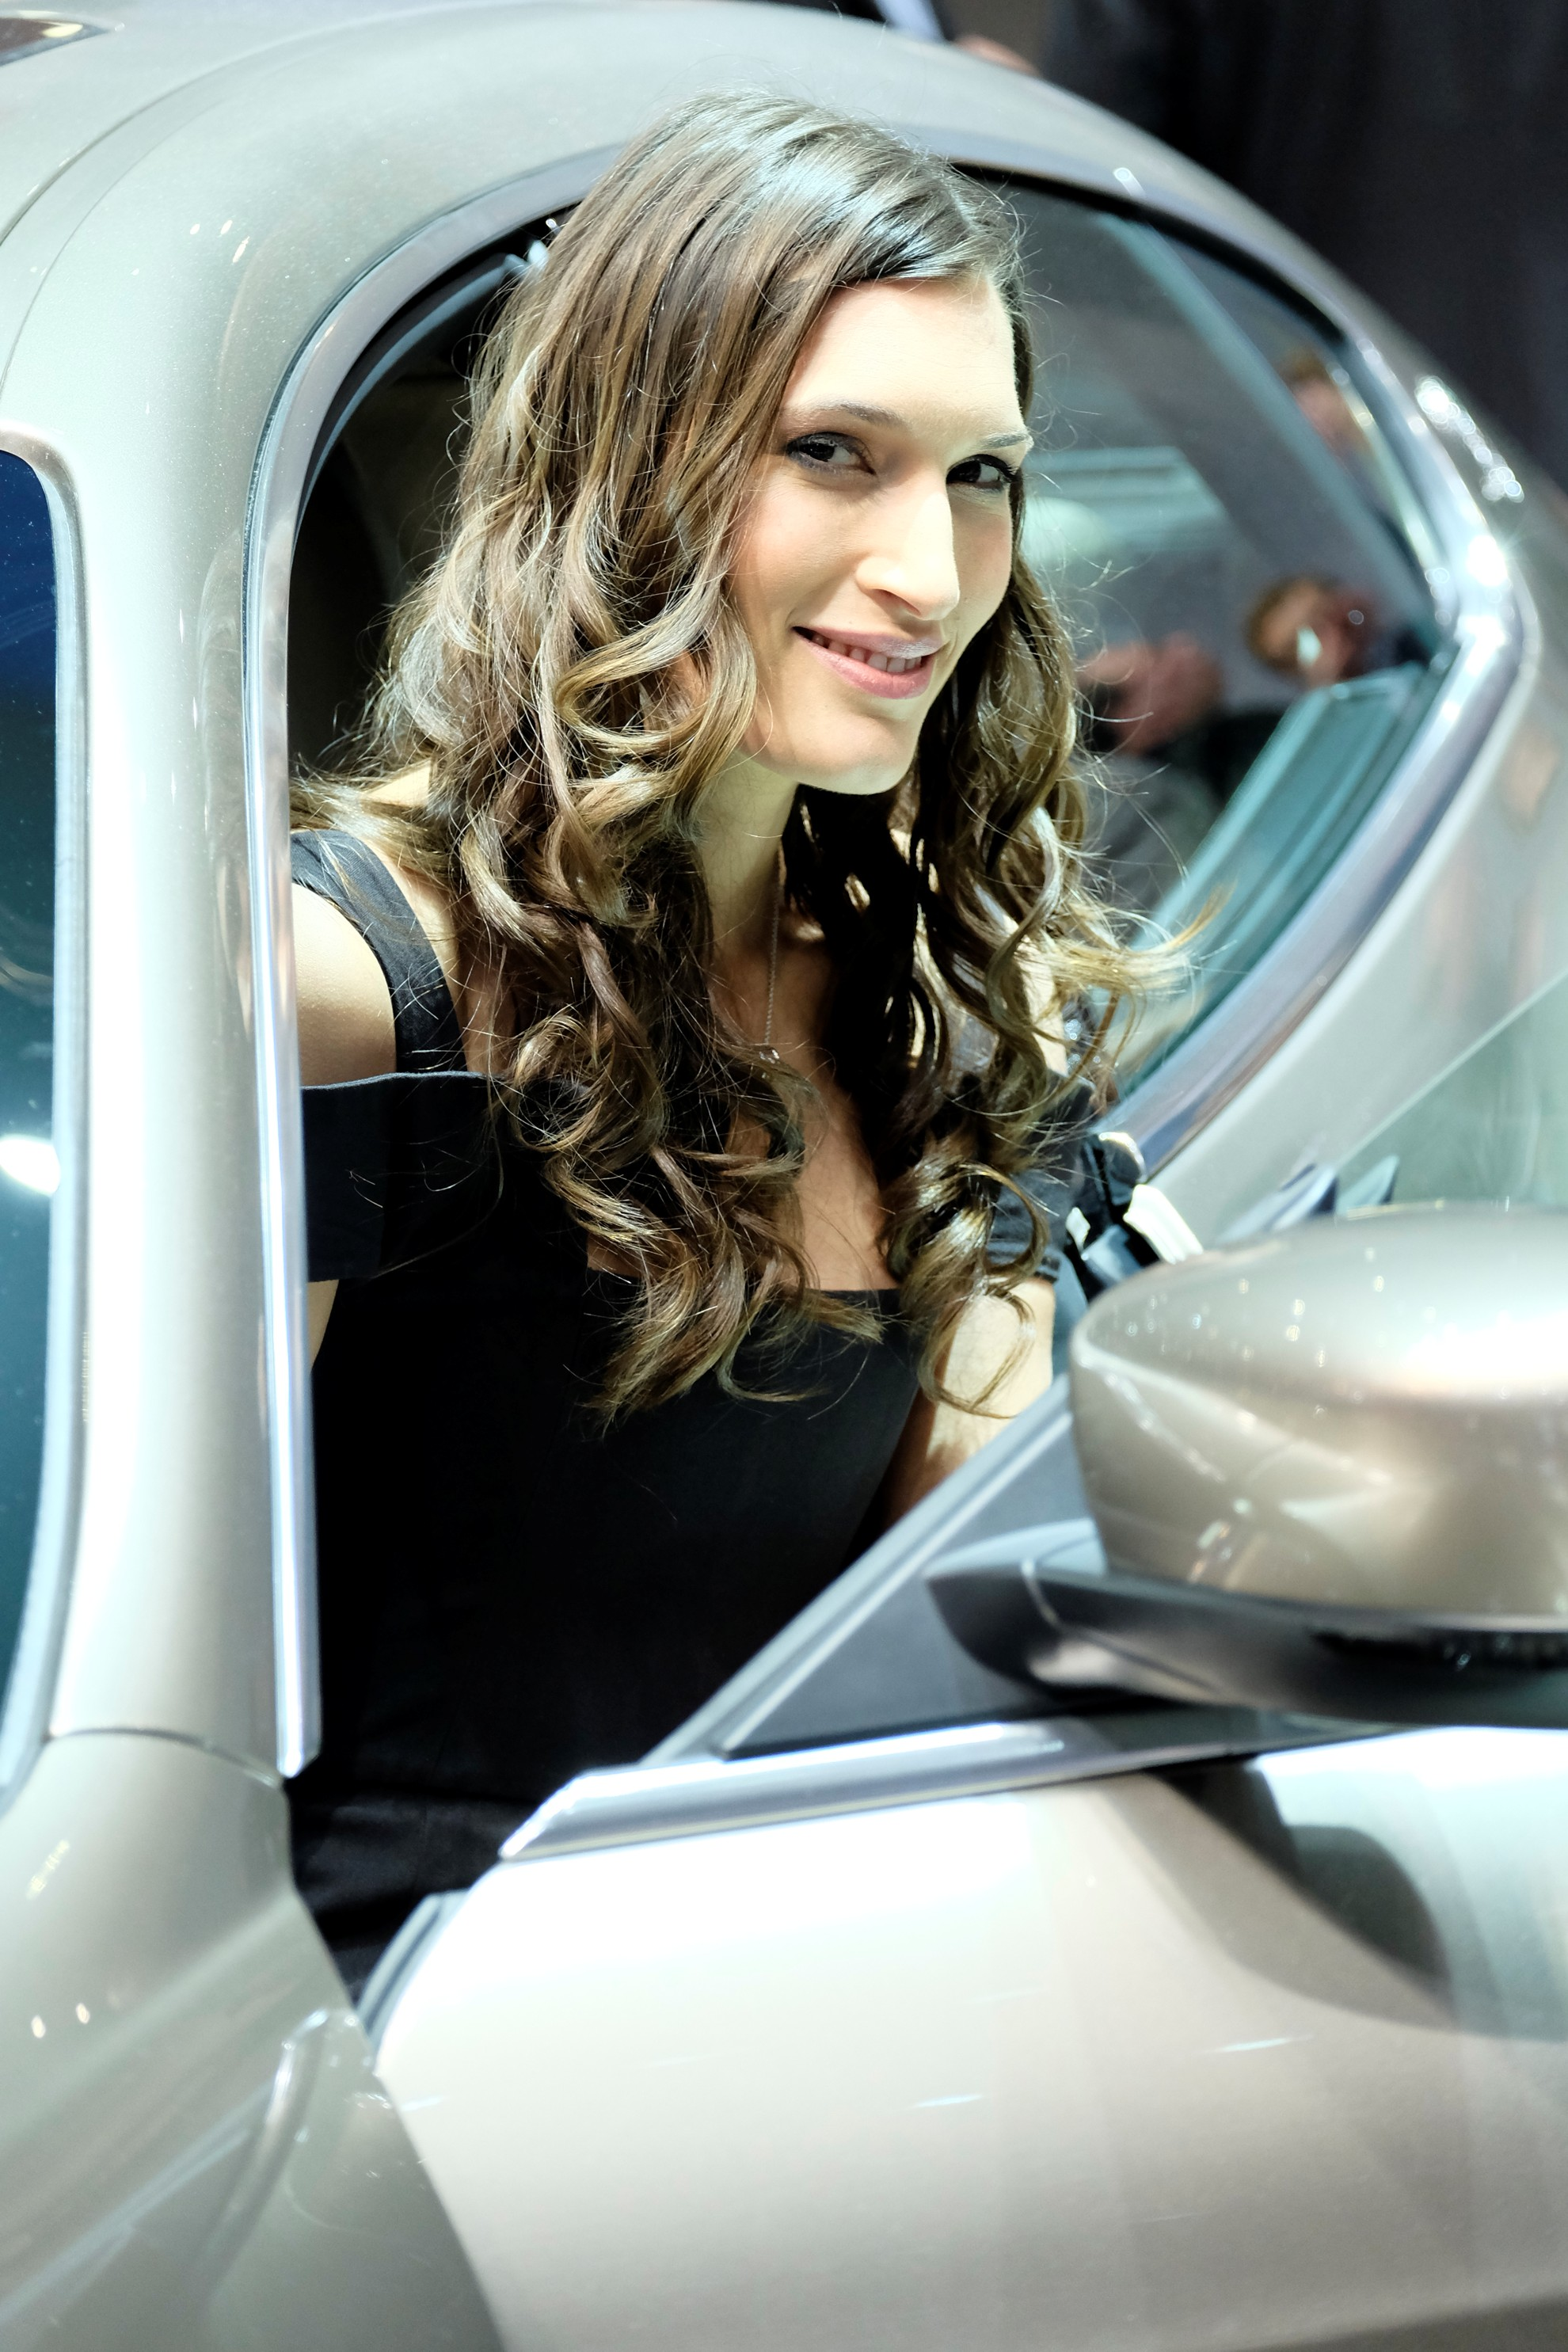 Geneva Motor Show Car Show Girls 2014 Technology Tips